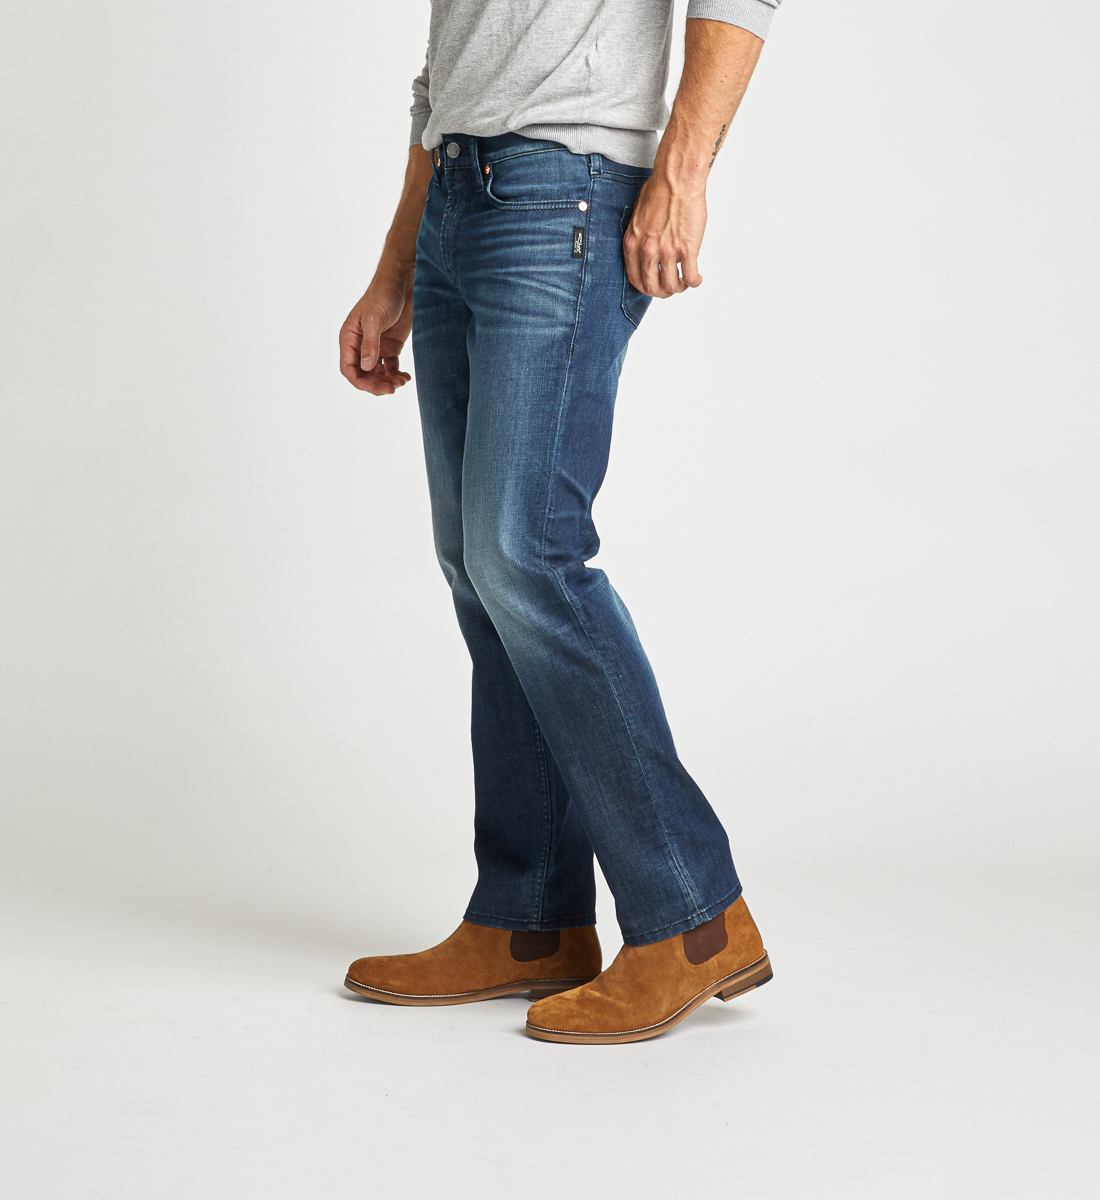 Konrad Slim Fit Slim Leg Jeans Side